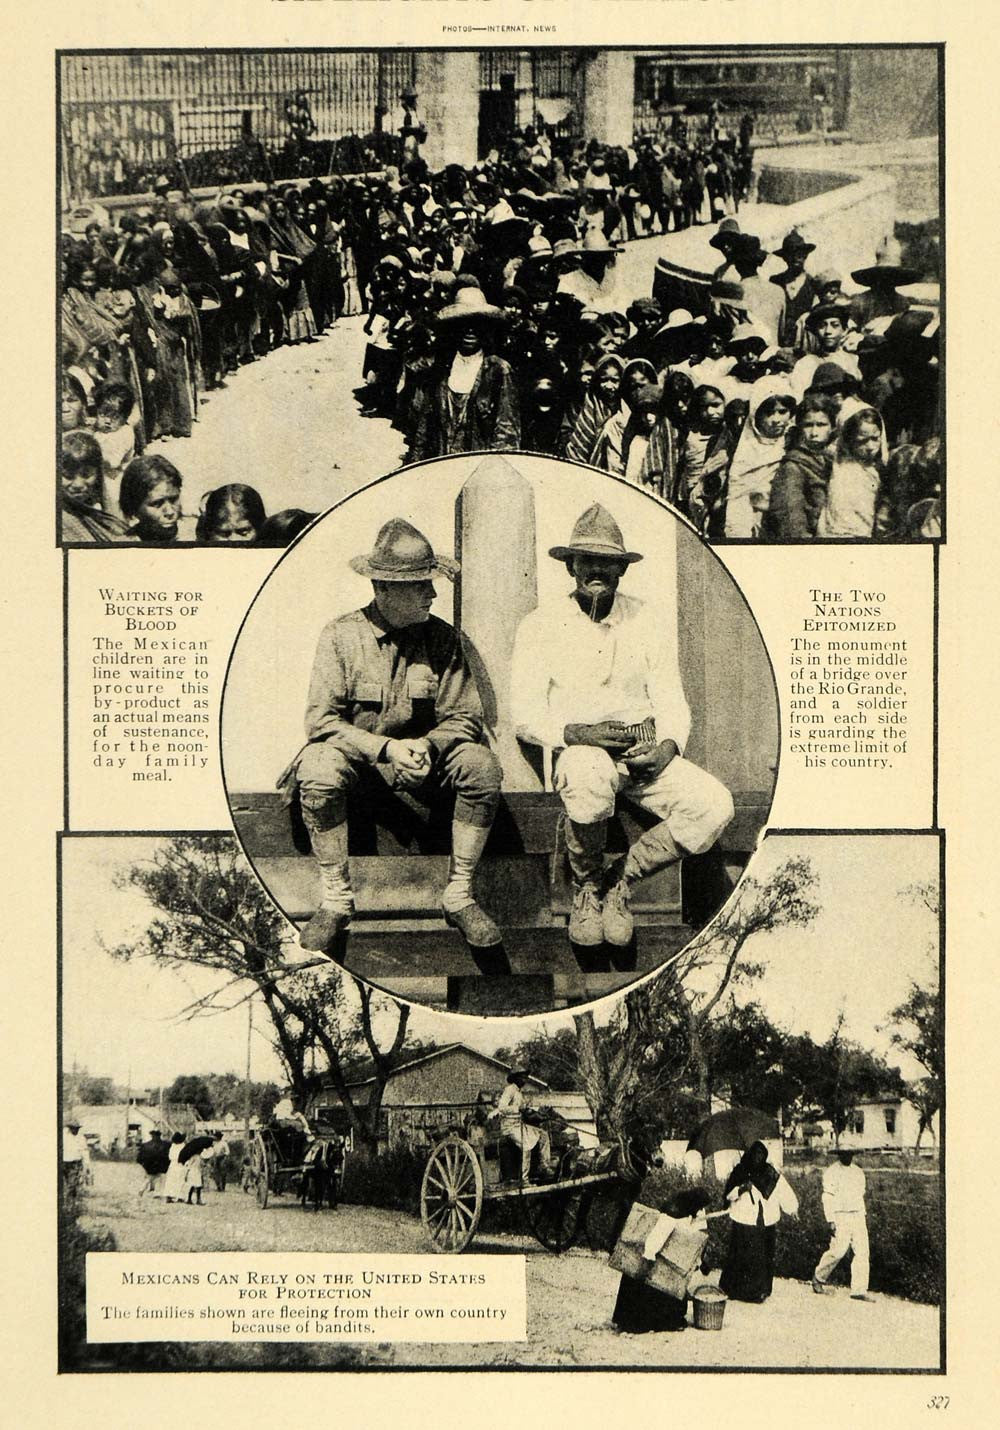 1915 Print Mexican Children Rio Grande Soldier Blood - ORIGINAL HISTORIC ILW2 - Period Paper